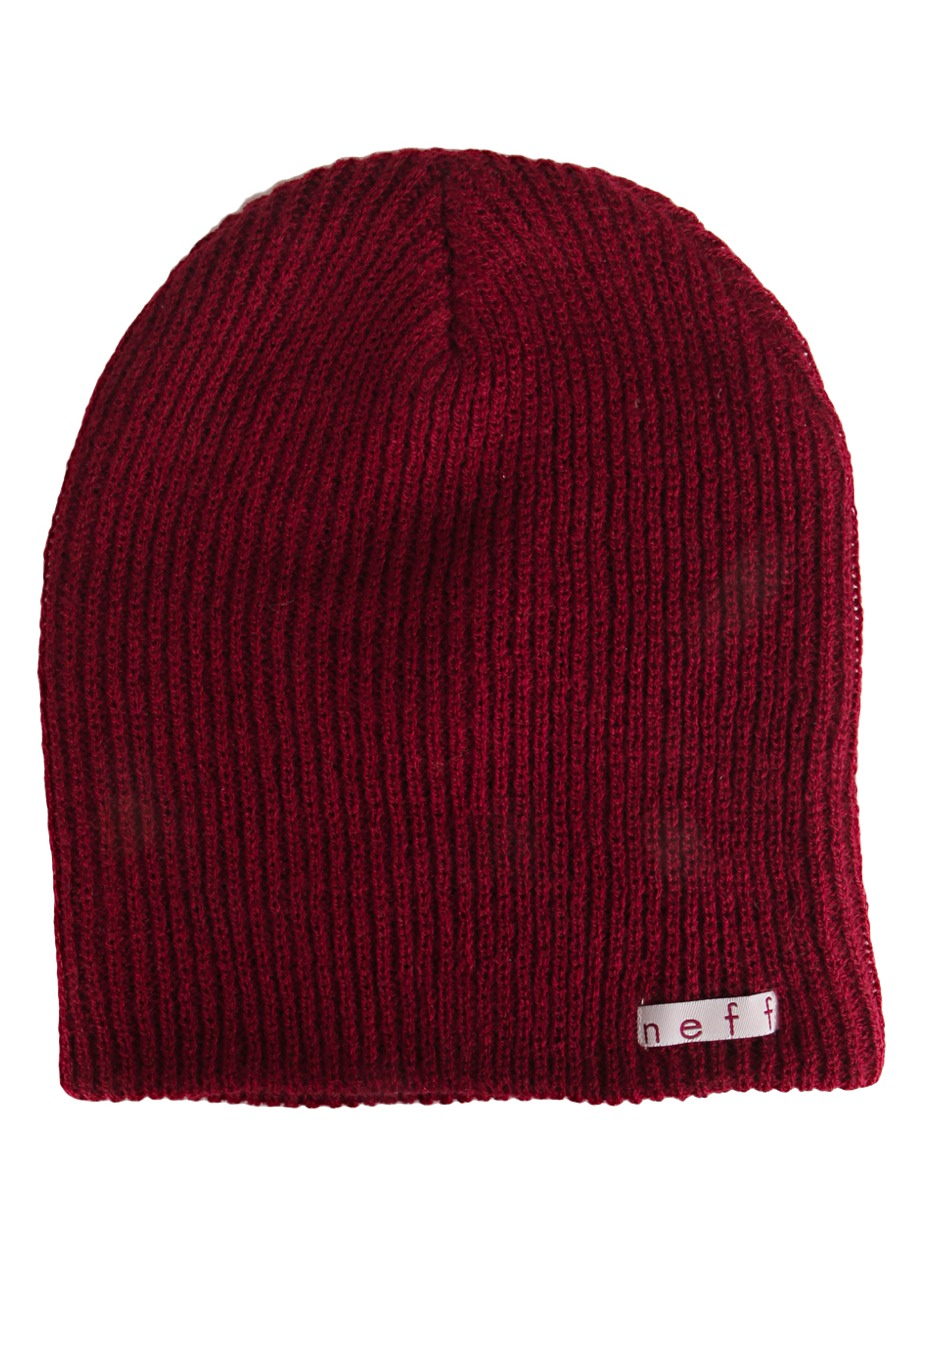 Neff - Daily Maroon - Beanie - Streetwear Shop - Impericon.com UK 359abfdae24